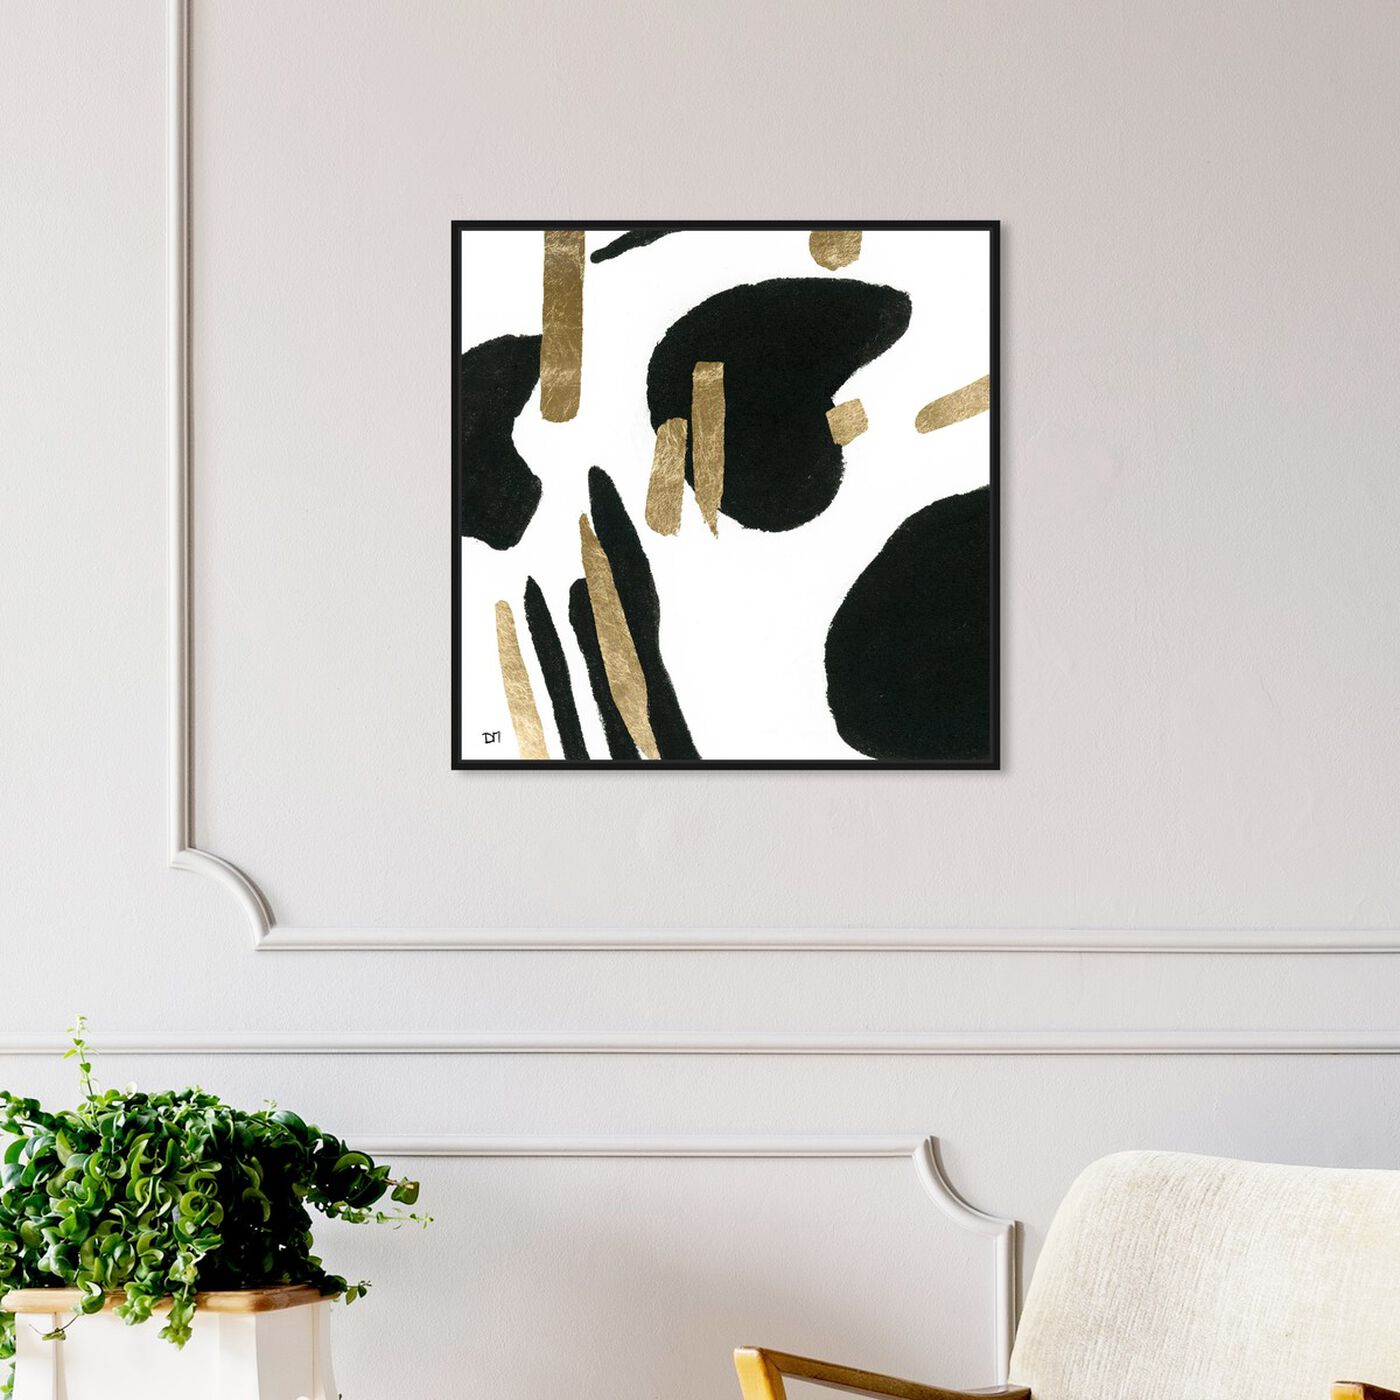 Hanging view of Bigger Gold featuring abstract and paint art.